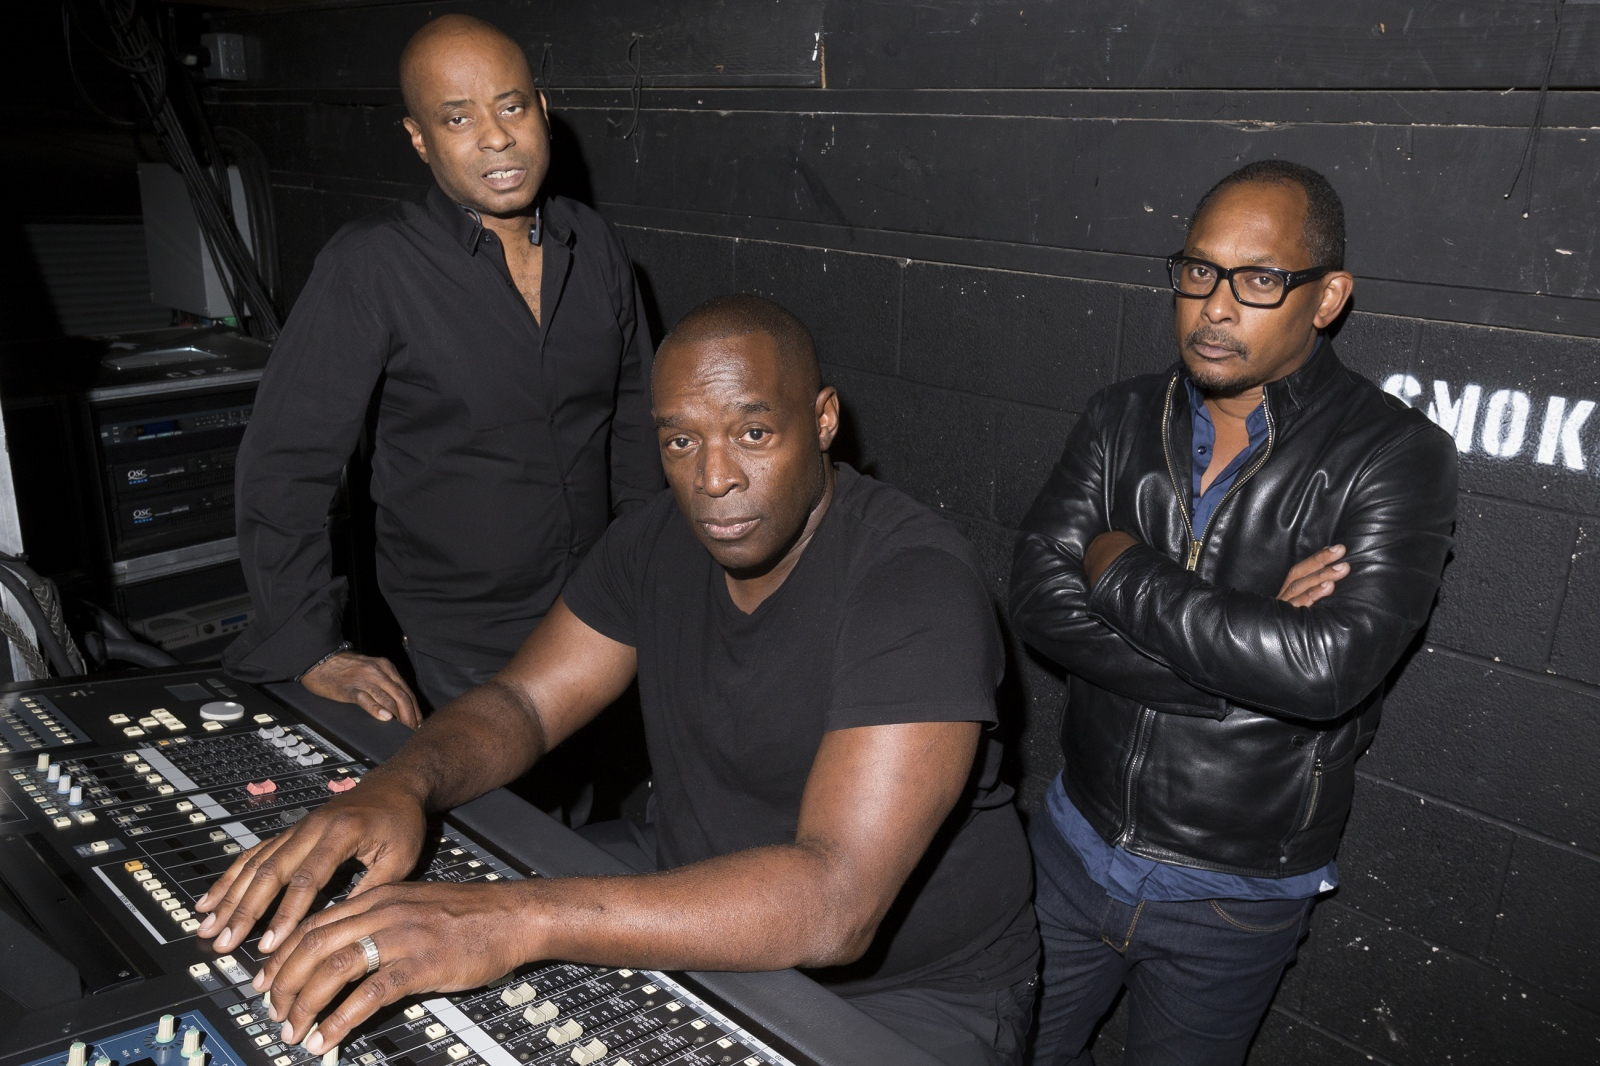 The legendary Detroit techno founders or The Belleville Three from left, Juan Atkins, Kevin Saunderson, and Derrick May pose at the Majestic Theater on Friday, May 26, 2017 in Detroit, Mich.